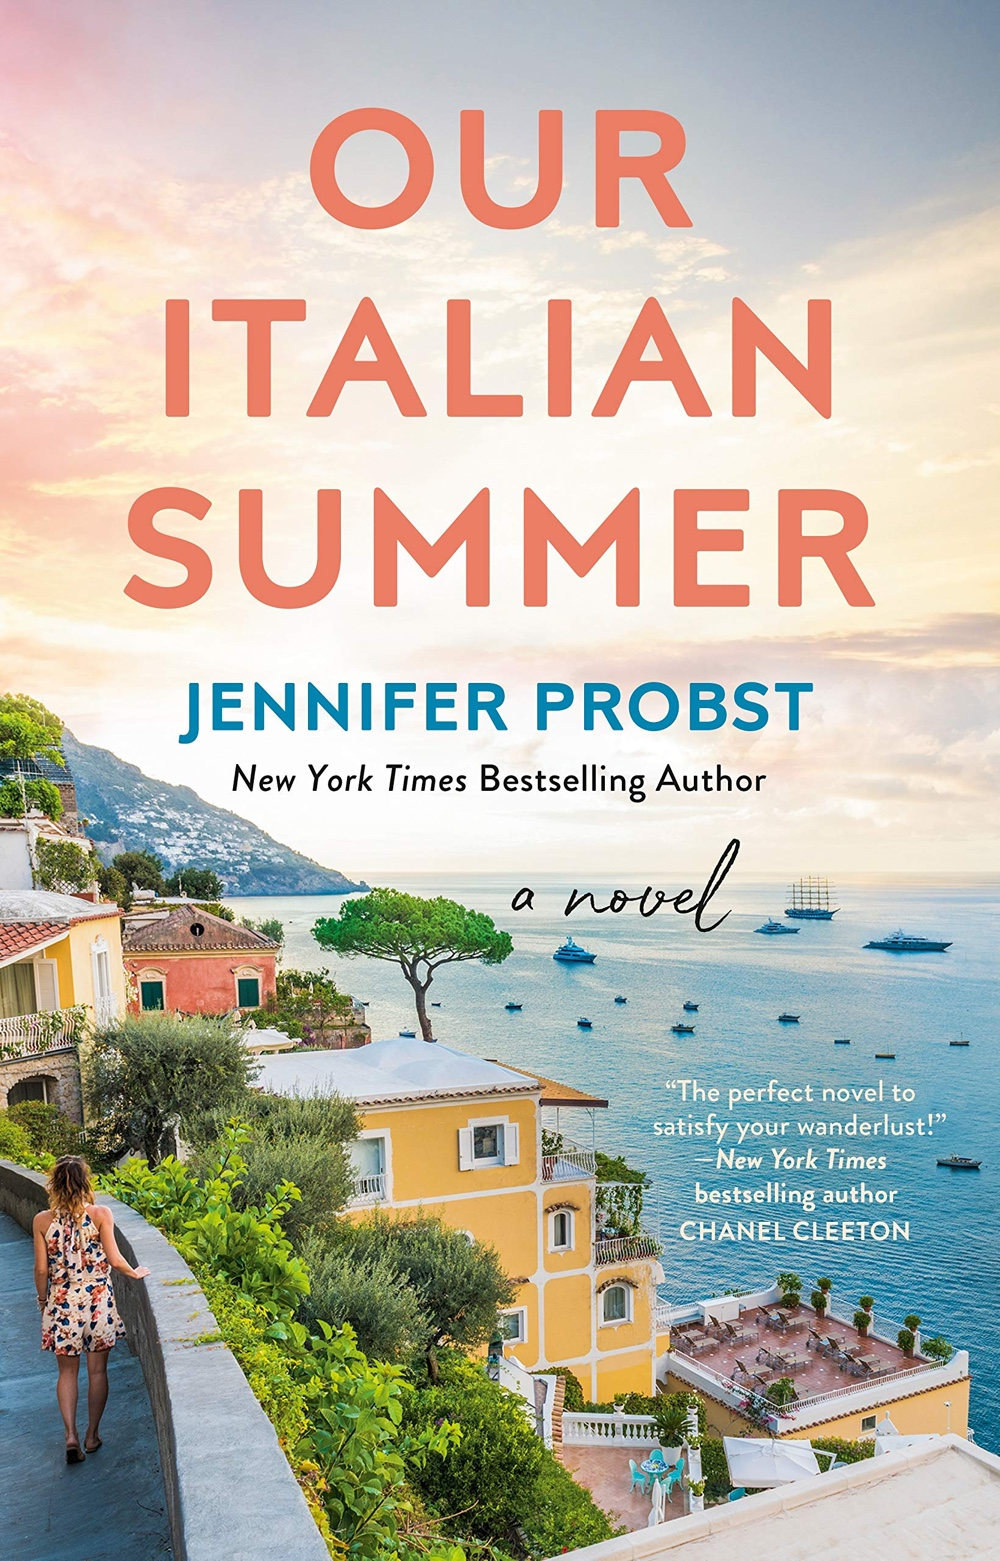 Our Italian Summer by Jennifer Probst   Audiobook Review